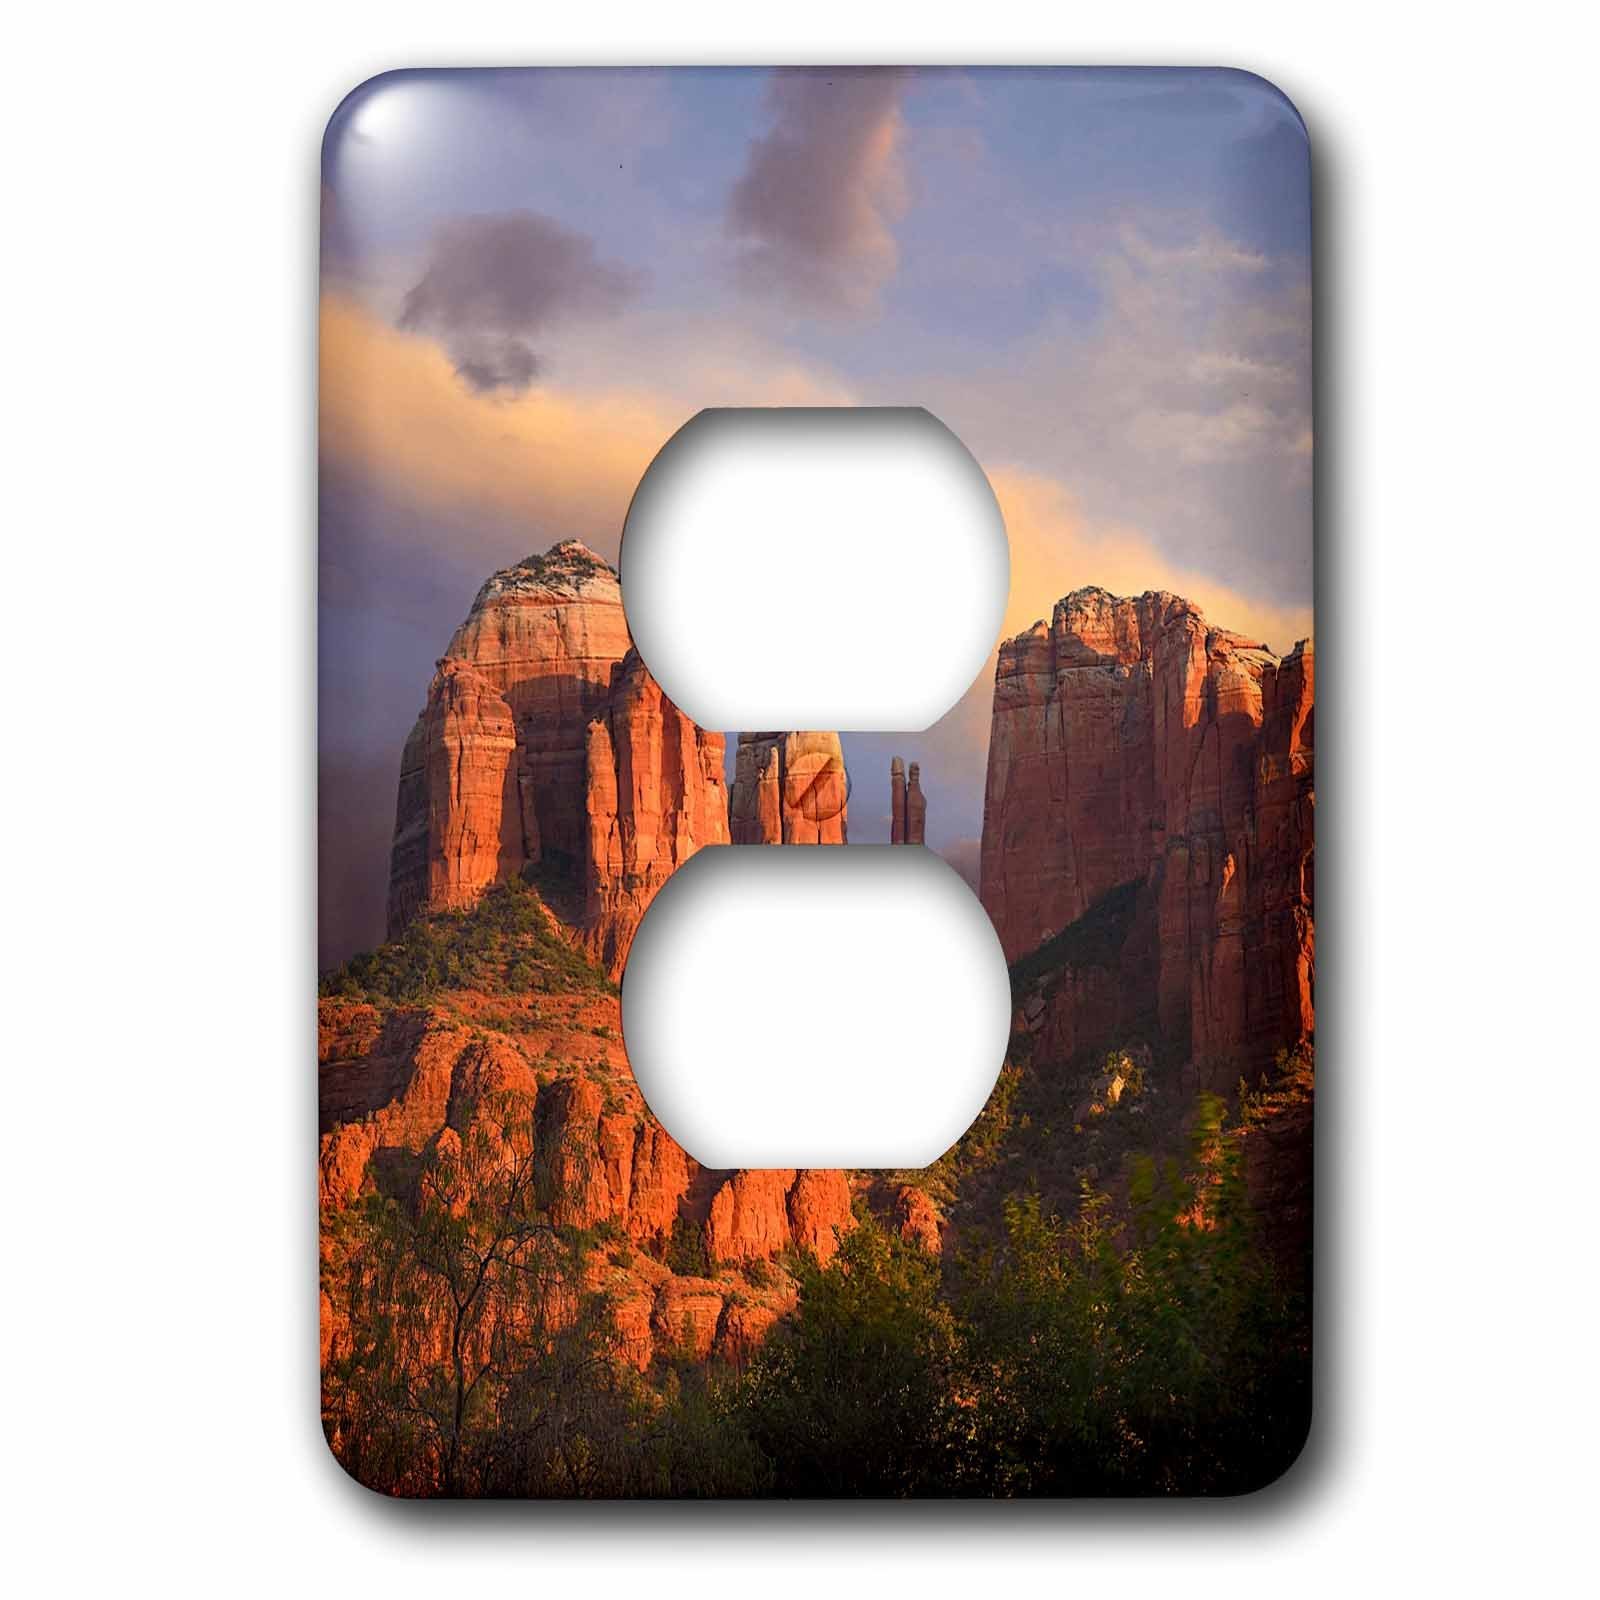 3dRose Danita Delimont - Deserts - Cathedral Rock near Sedona, Arizona, USA - Light Switch Covers - 2 plug outlet cover (lsp_258771_6)